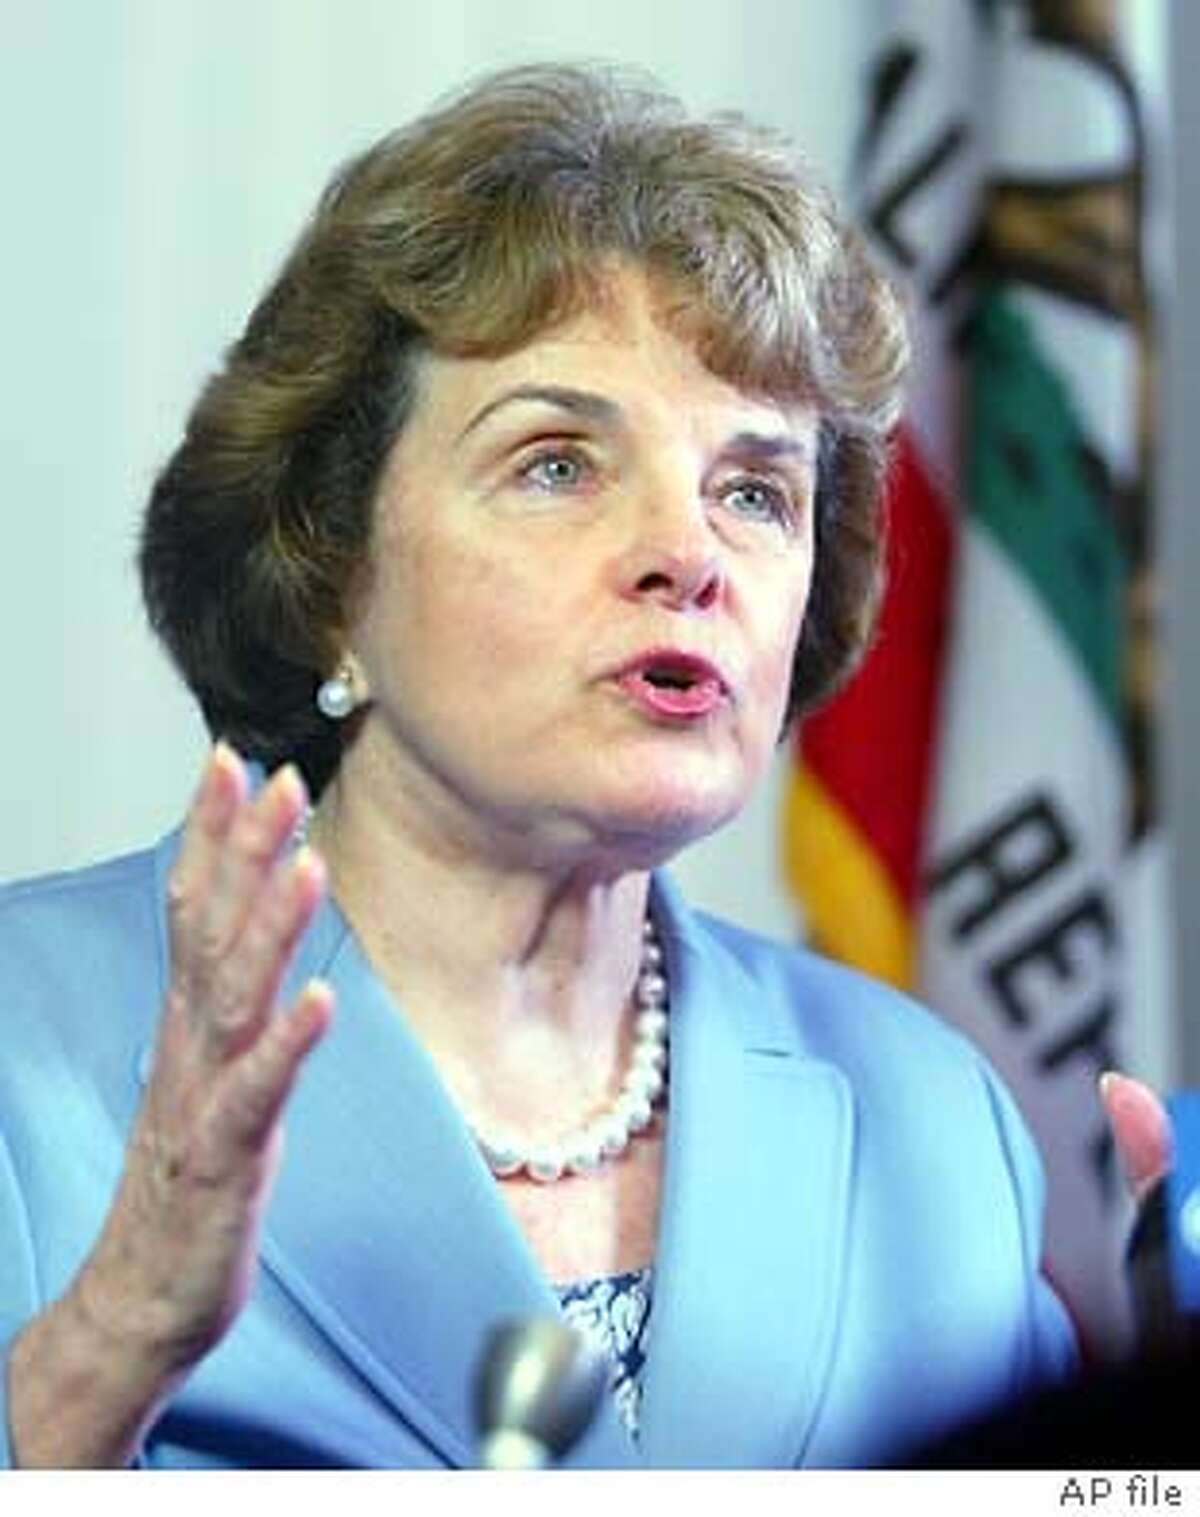 Sen. Dianne Feinstein, D-Calif., discusses the recall vote at her offices in San Francisco, Wednesday, Oct. 8, 2003. (AP Photo/George Nitikin) ALSO RAN 11/26/2003 Sen. Dianne Feinstein called the actions by the financial industry diabolical. Photo caption privacy22_PH1097107200APSen. Dianne Feinstein, D-Calif., discusses the recall vote at her offices in San Francisco, Wednesday, Oct. 8, 2003. (AP Photo-George Nitikin) Dianne Feinstein warned that the country appears arrogant. Dianne Feinstein warned that the country appears arrogant. Politics#MainNews#Chronicle#11/4/2003#ALL#5star#A14#0421429744 Sens. Dianne Feinstein (left) and Barbara Boxer fought for the states privacy law. Nation#MainNews#Chronicle#11/6/2003#ALL#3star##0421429744 Sen. Dianne Feinstein, seeking to renew her weapons ban, says tougher laws have no chance.